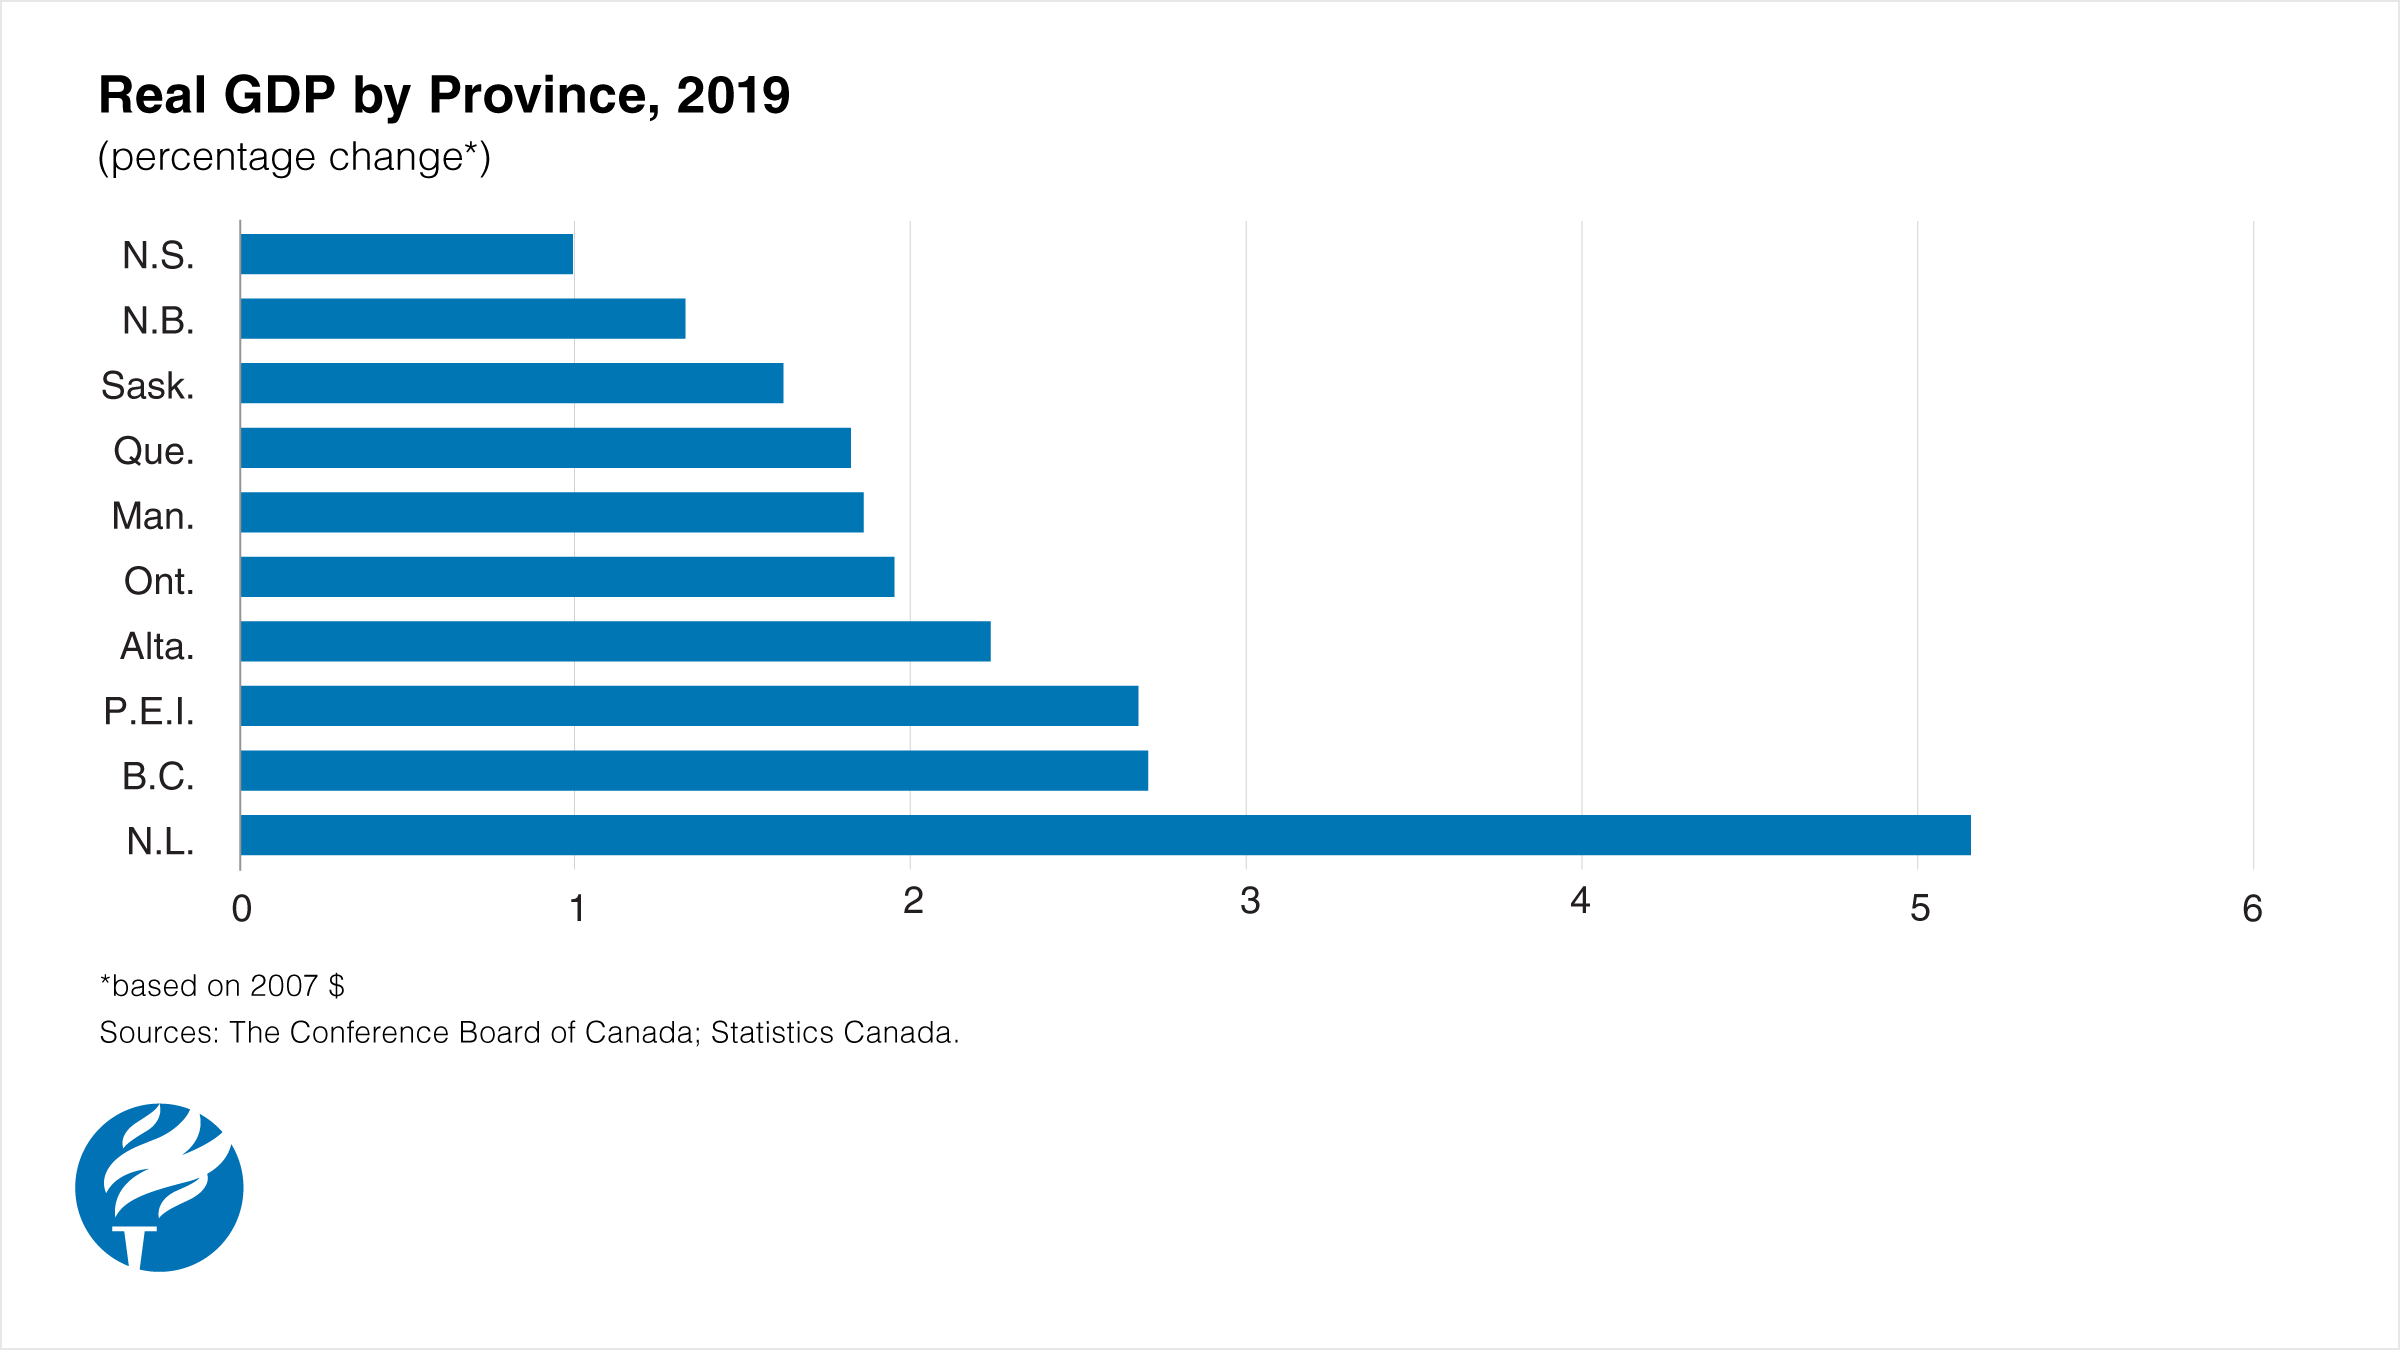 Newfoundland and Labrador will have fastest economic growth in 2019